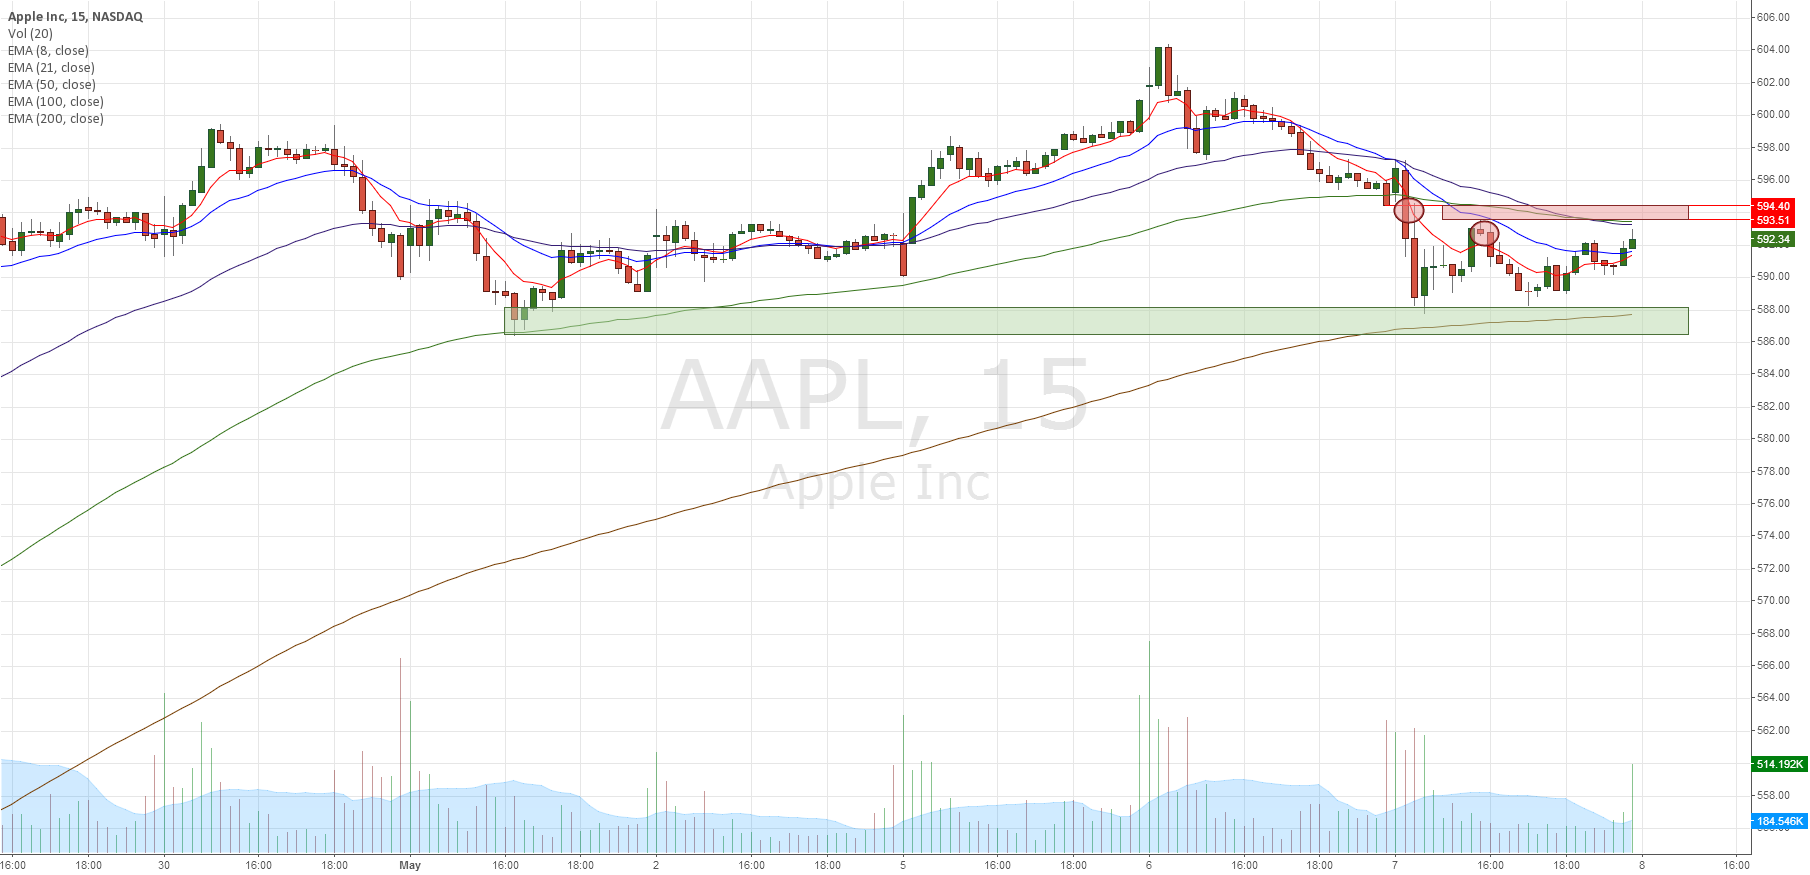 AAPL 2nd day continuation